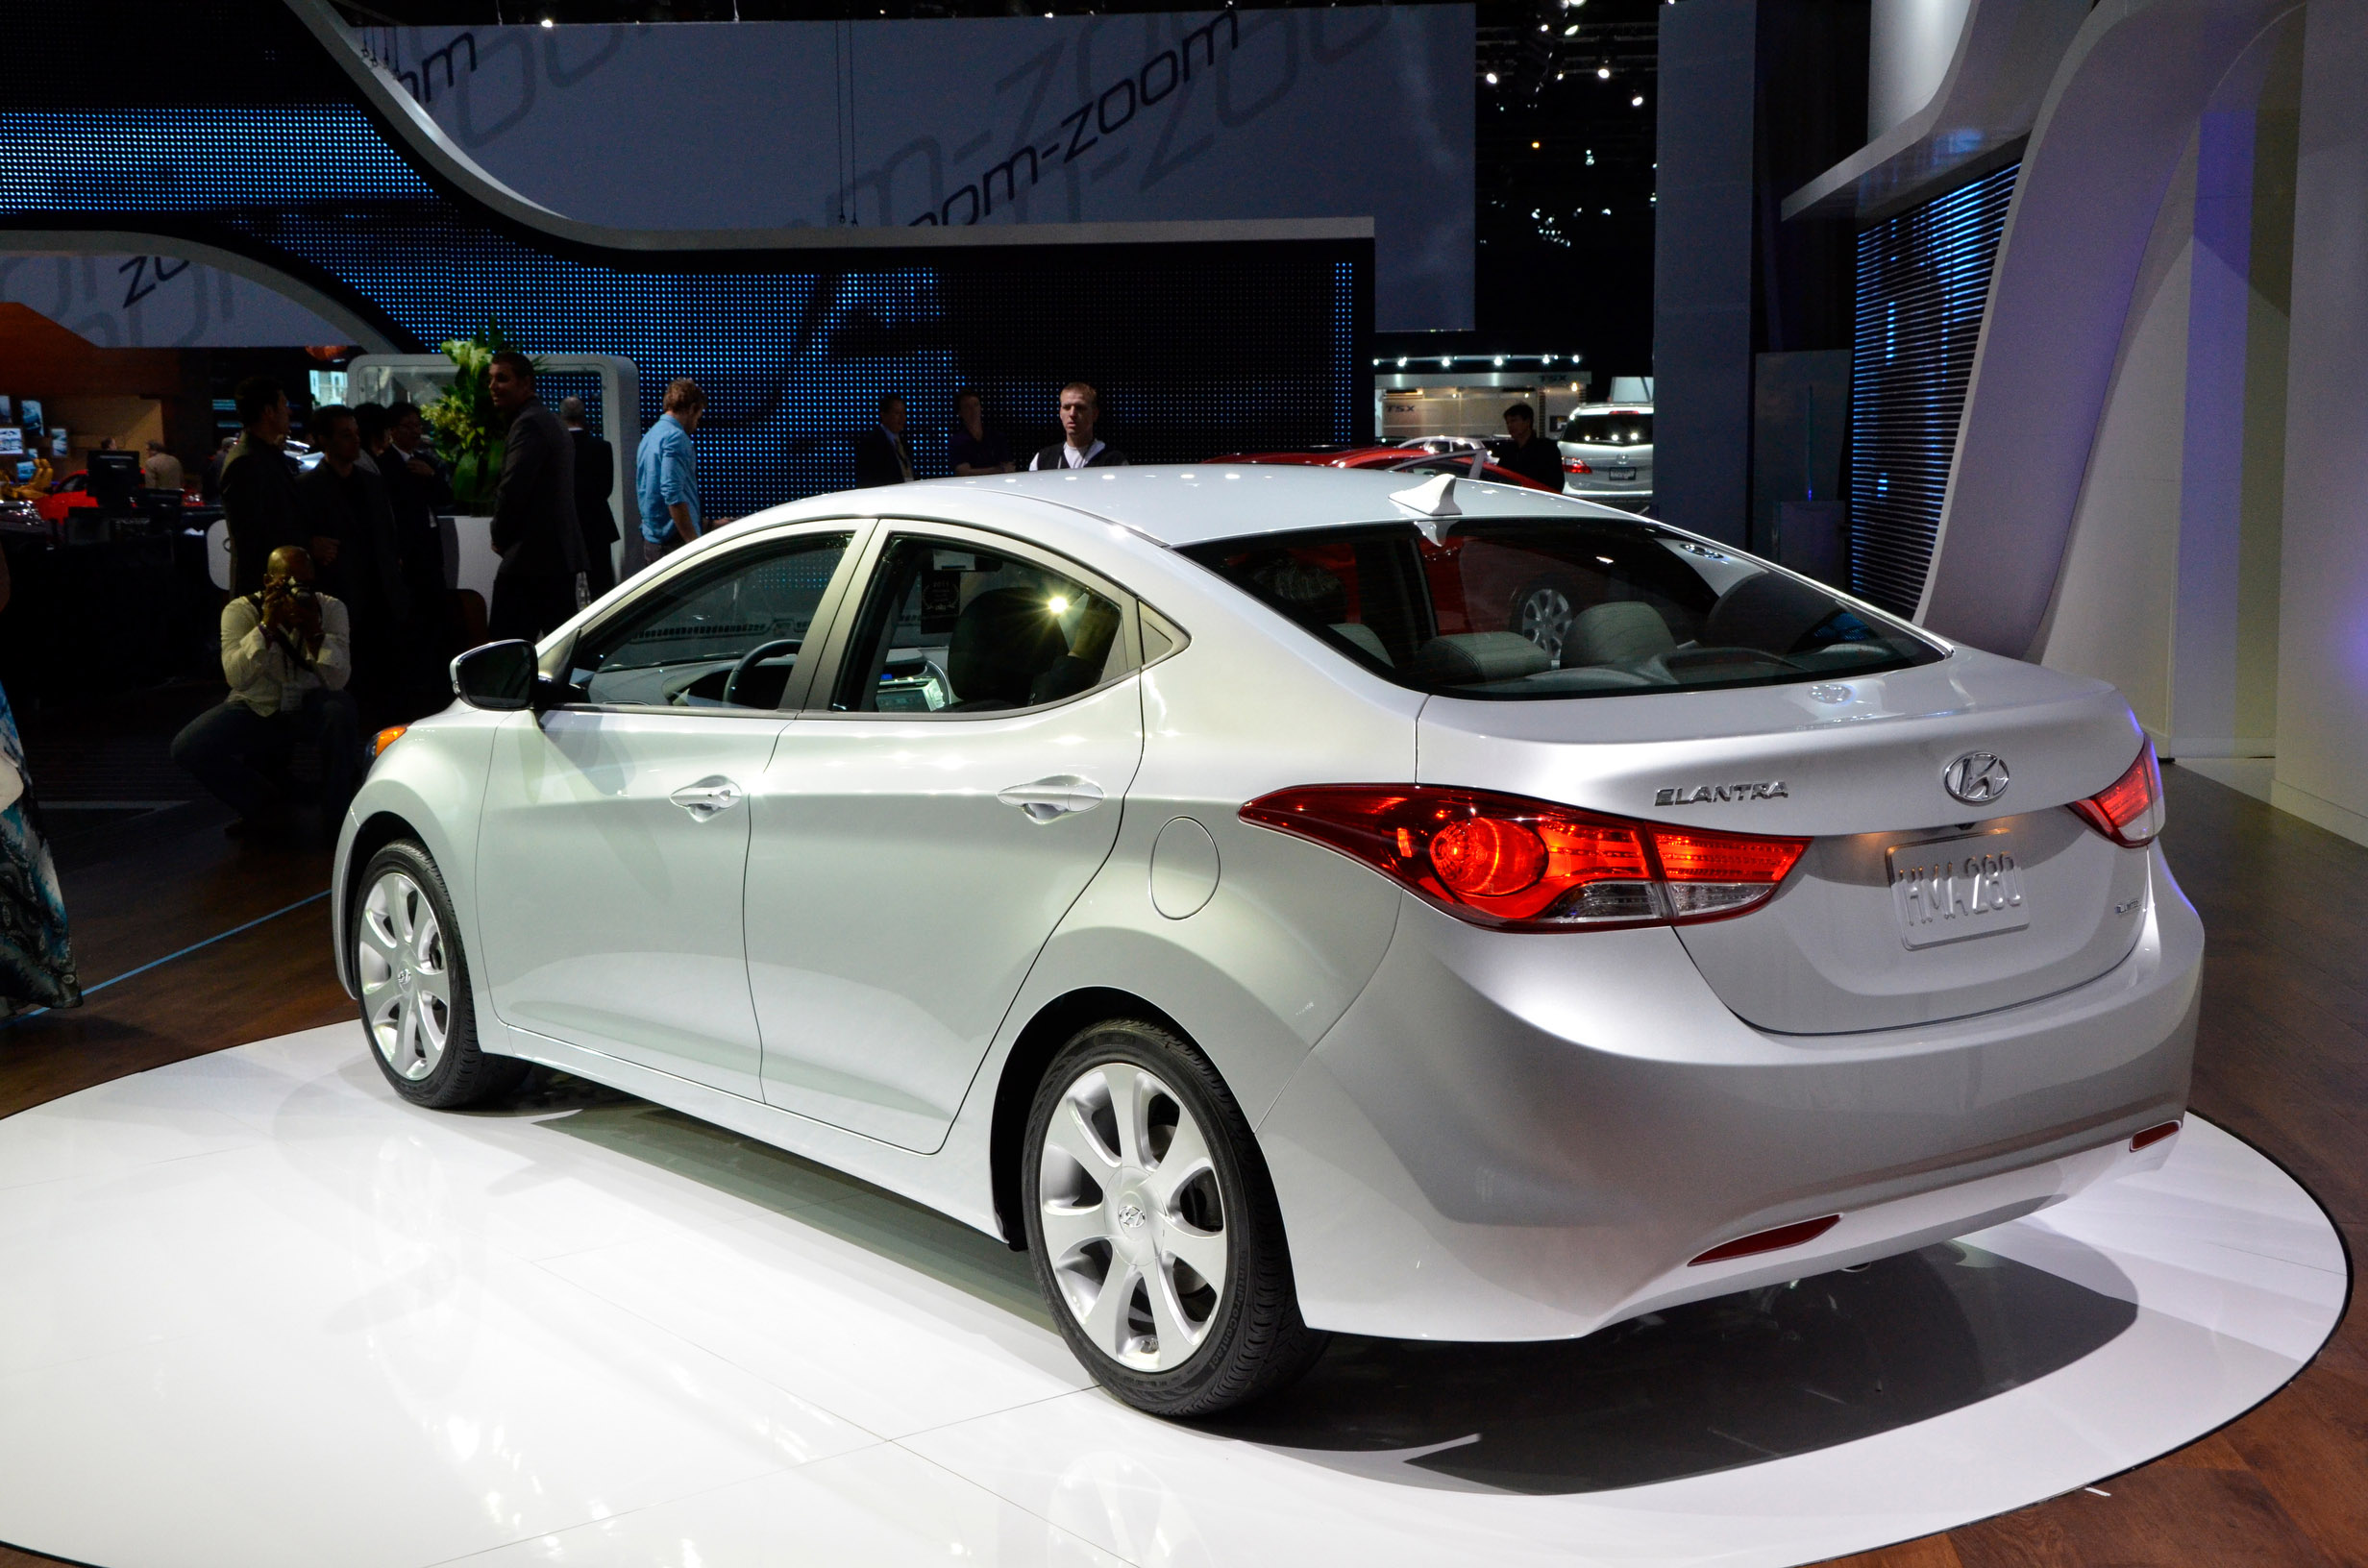 Hyundai Elantra Los Angeles 2010 Picture 45849